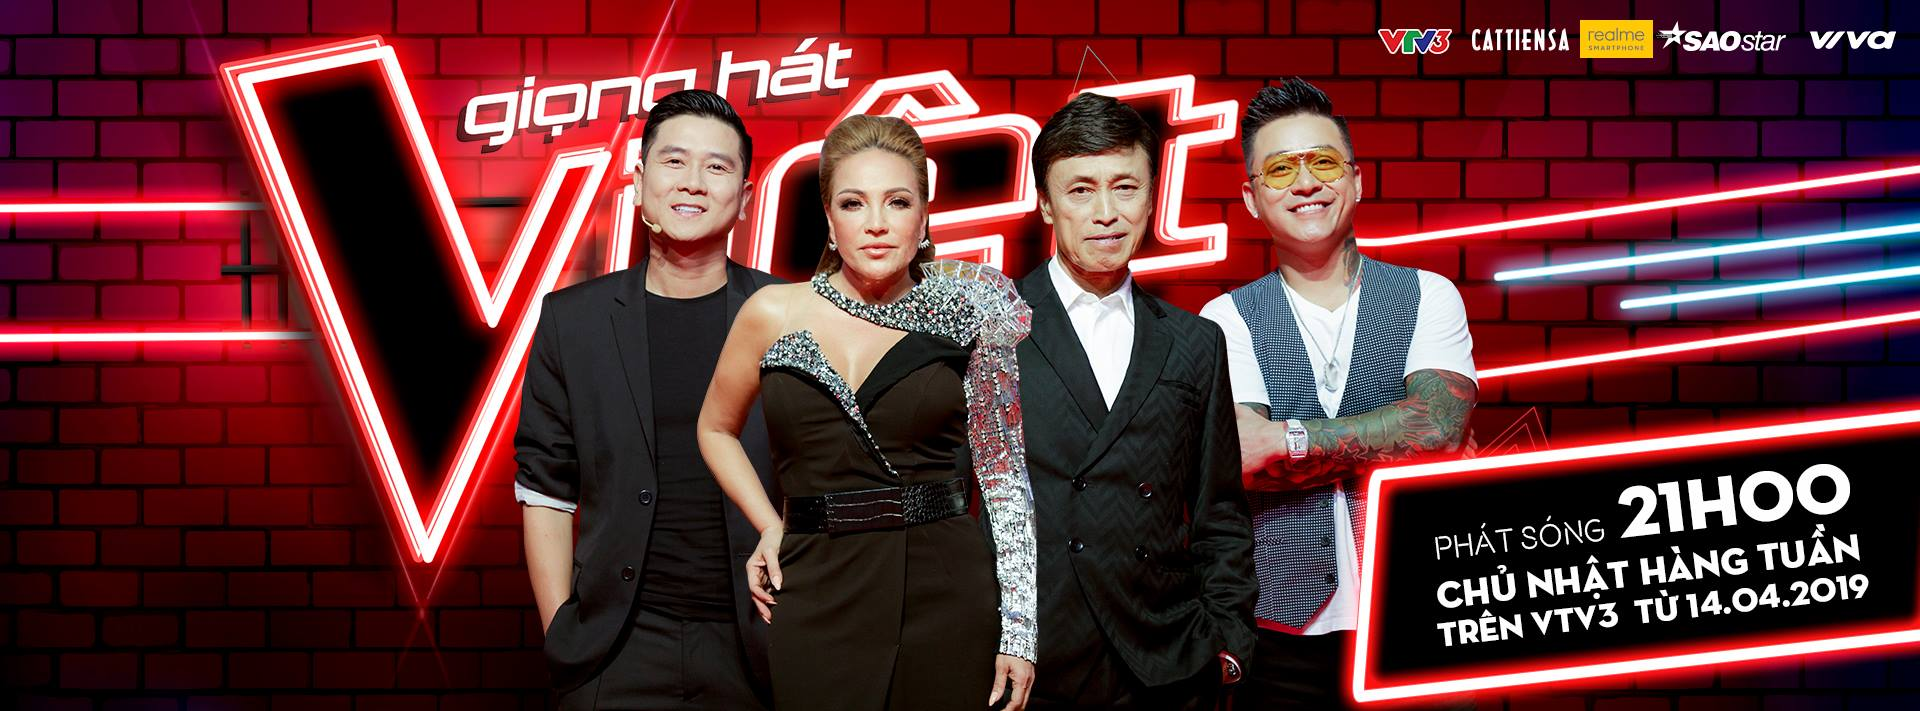 Top hot game show in Vietnam